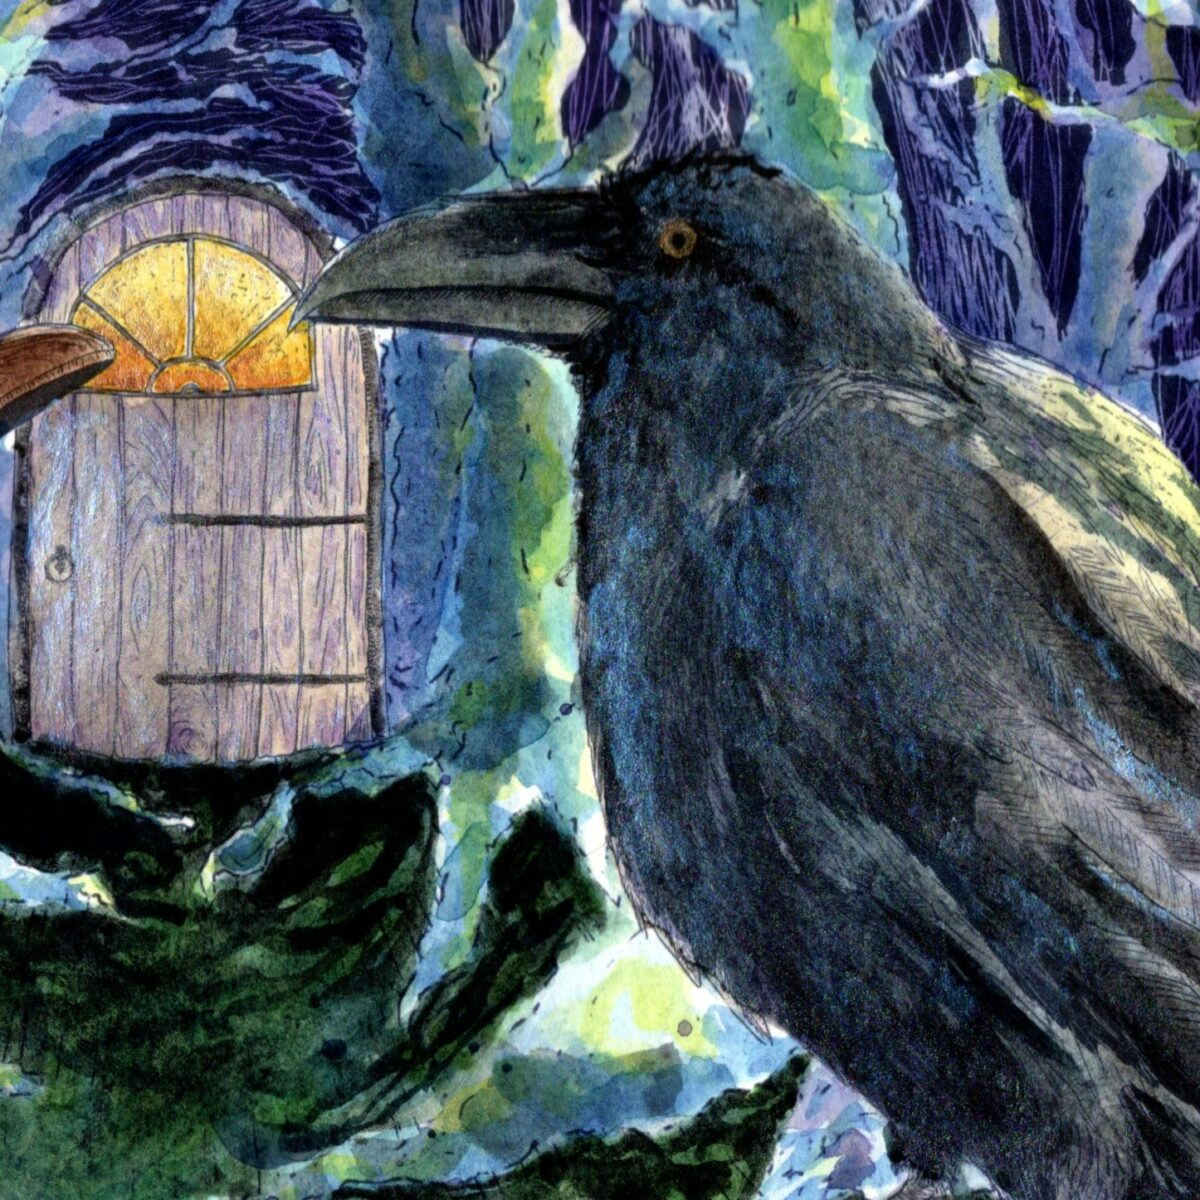 Close up of the Raven from The Old Man, The Bird